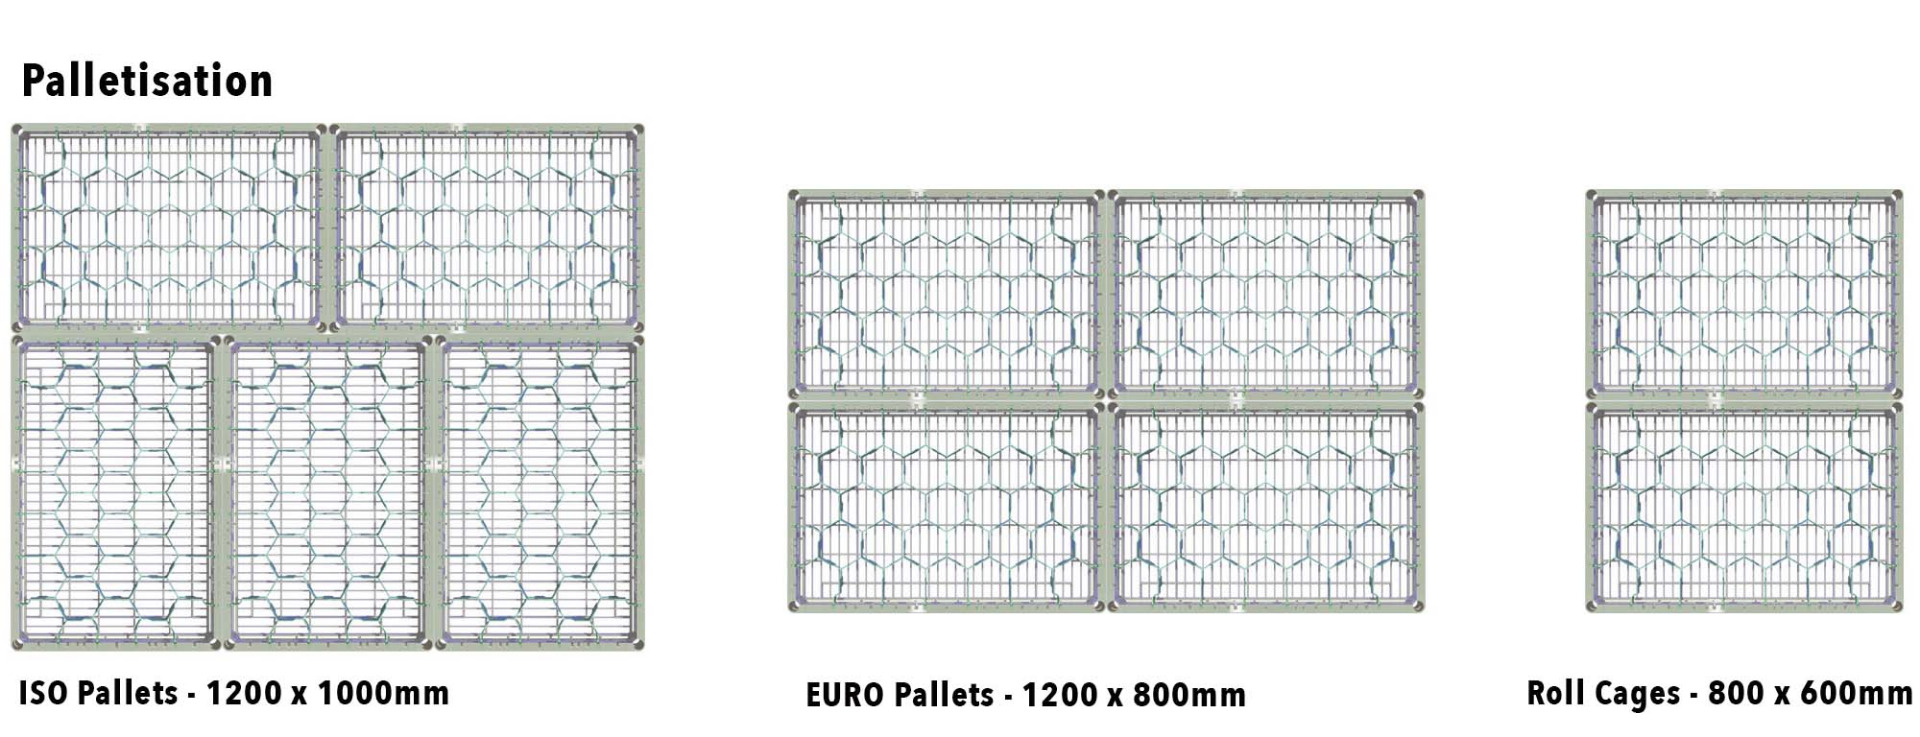 roll cages, UK and Euro Standard pallets.